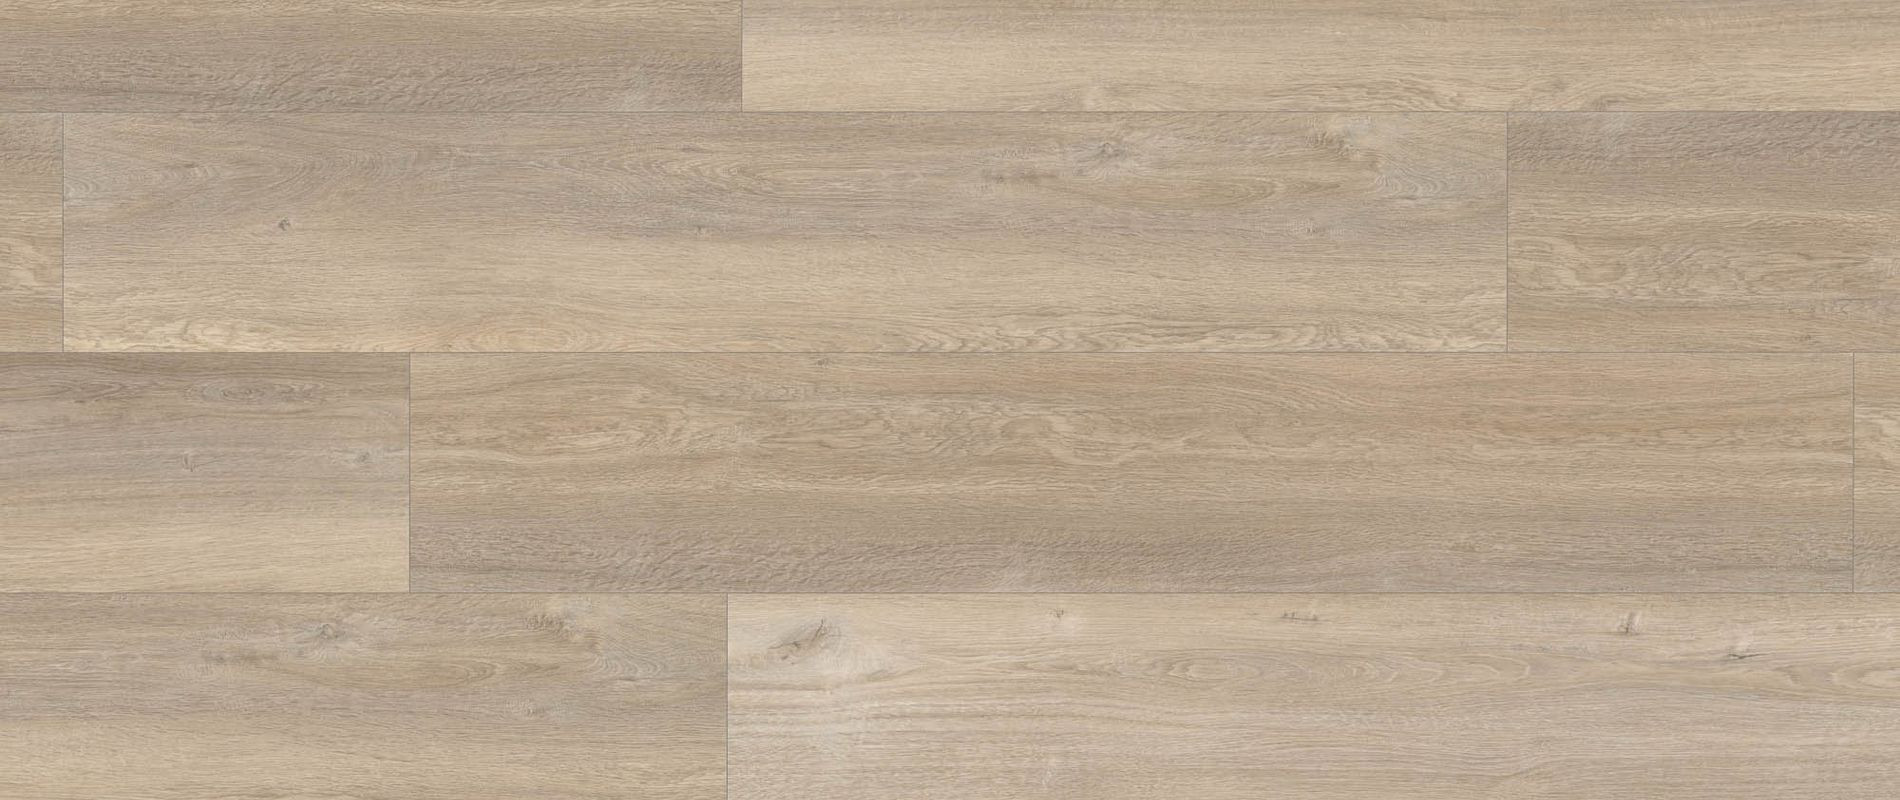 avg cost of hardwood flooring installed of grey wood floors beautiful grey and white rug area rugs for hardwood within grey wood floors elegant wineo pureline bioboden 1500 wood xl art pl097c pl097c of grey wood